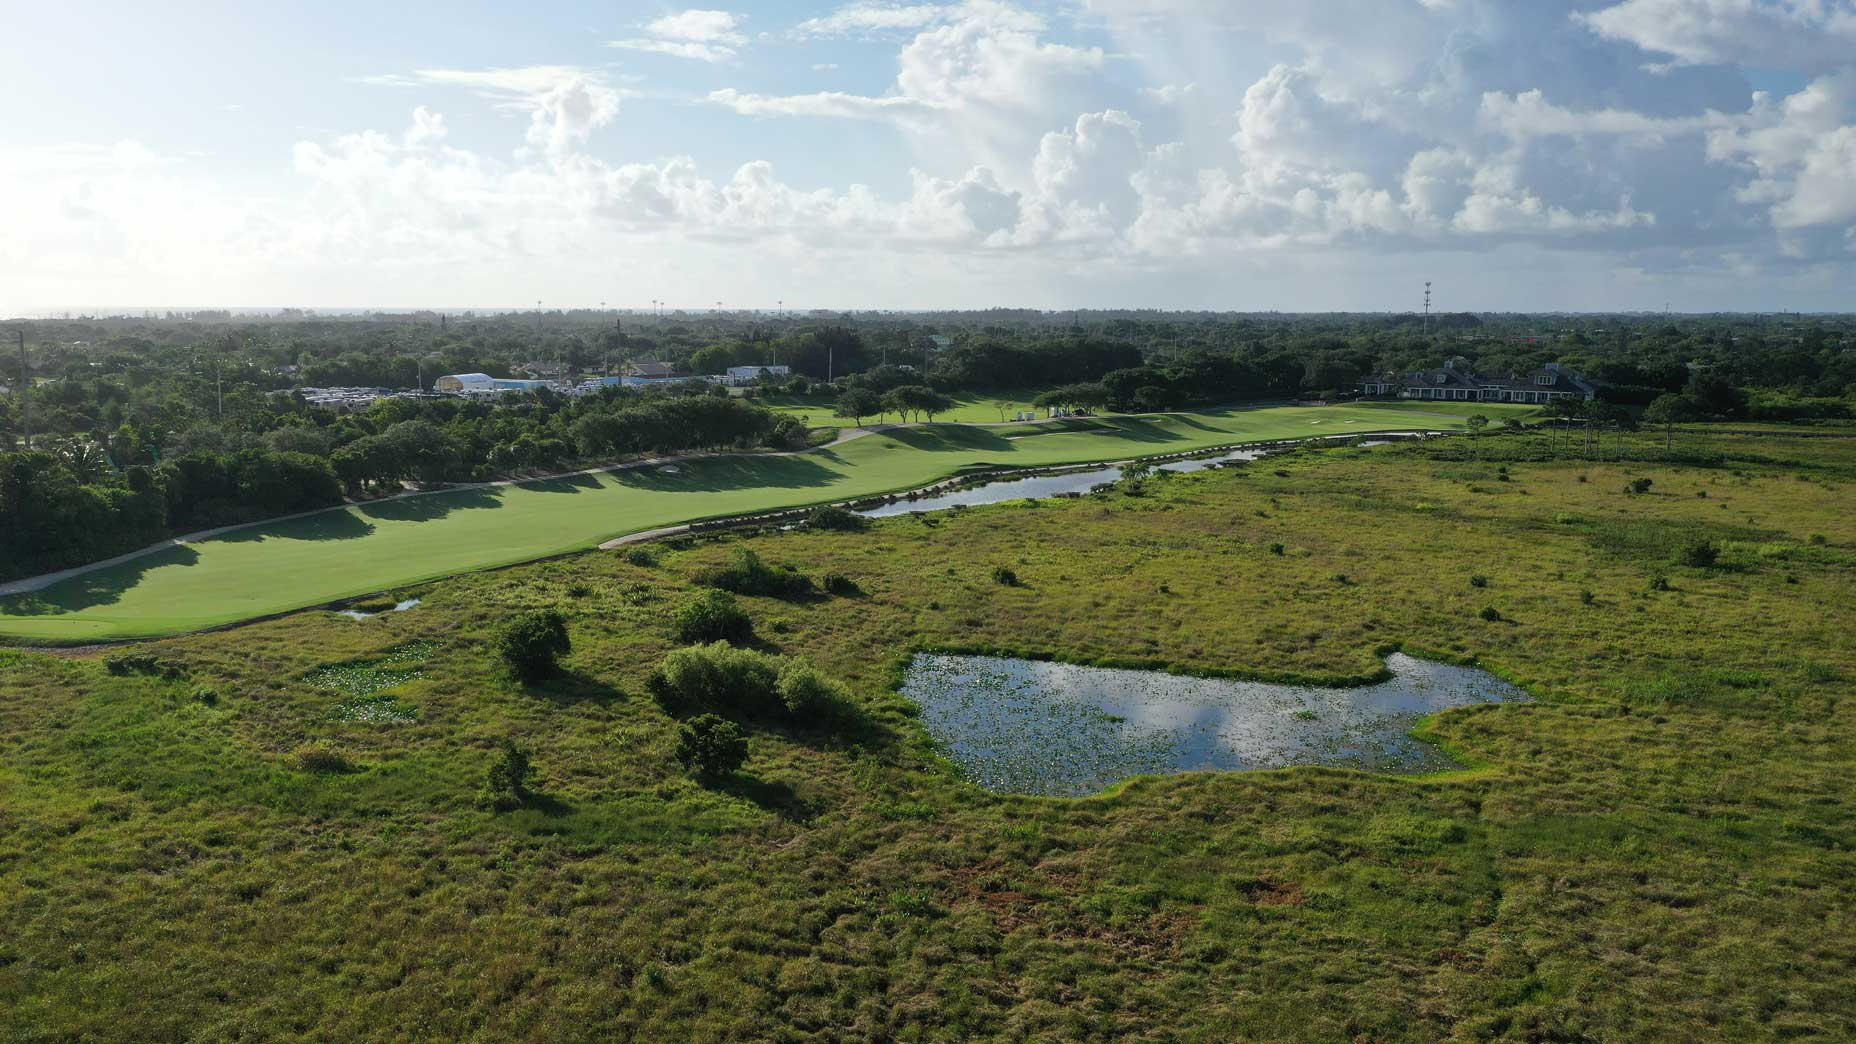 An aerial drone view of the 18th hole at Medalist Golf Club.